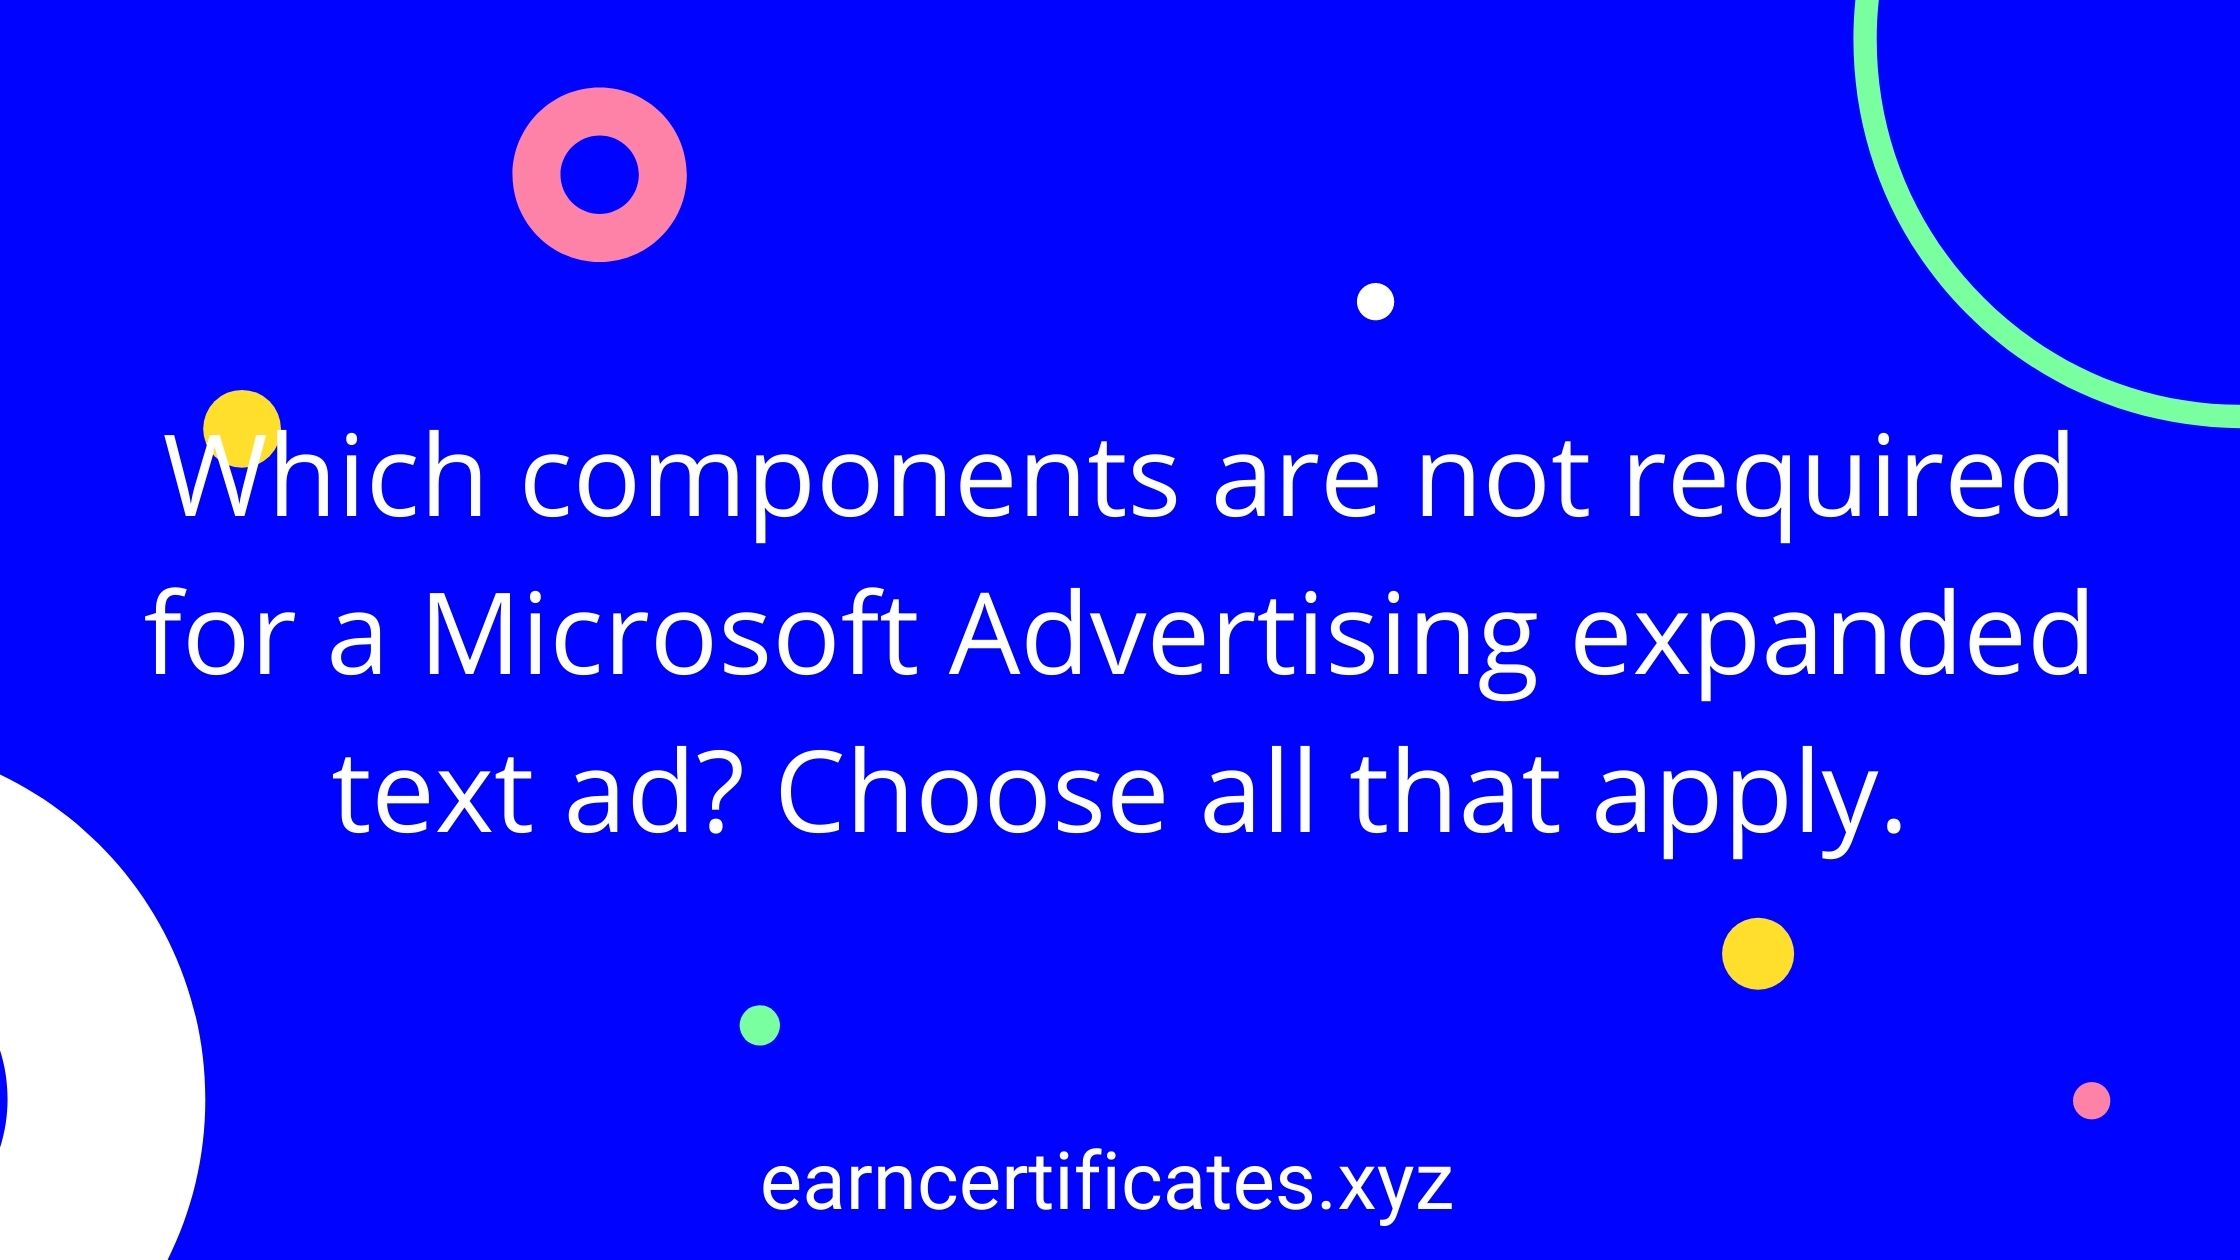 Which components are not required for a Microsoft Advertising expanded text ad? Choose all that apply.